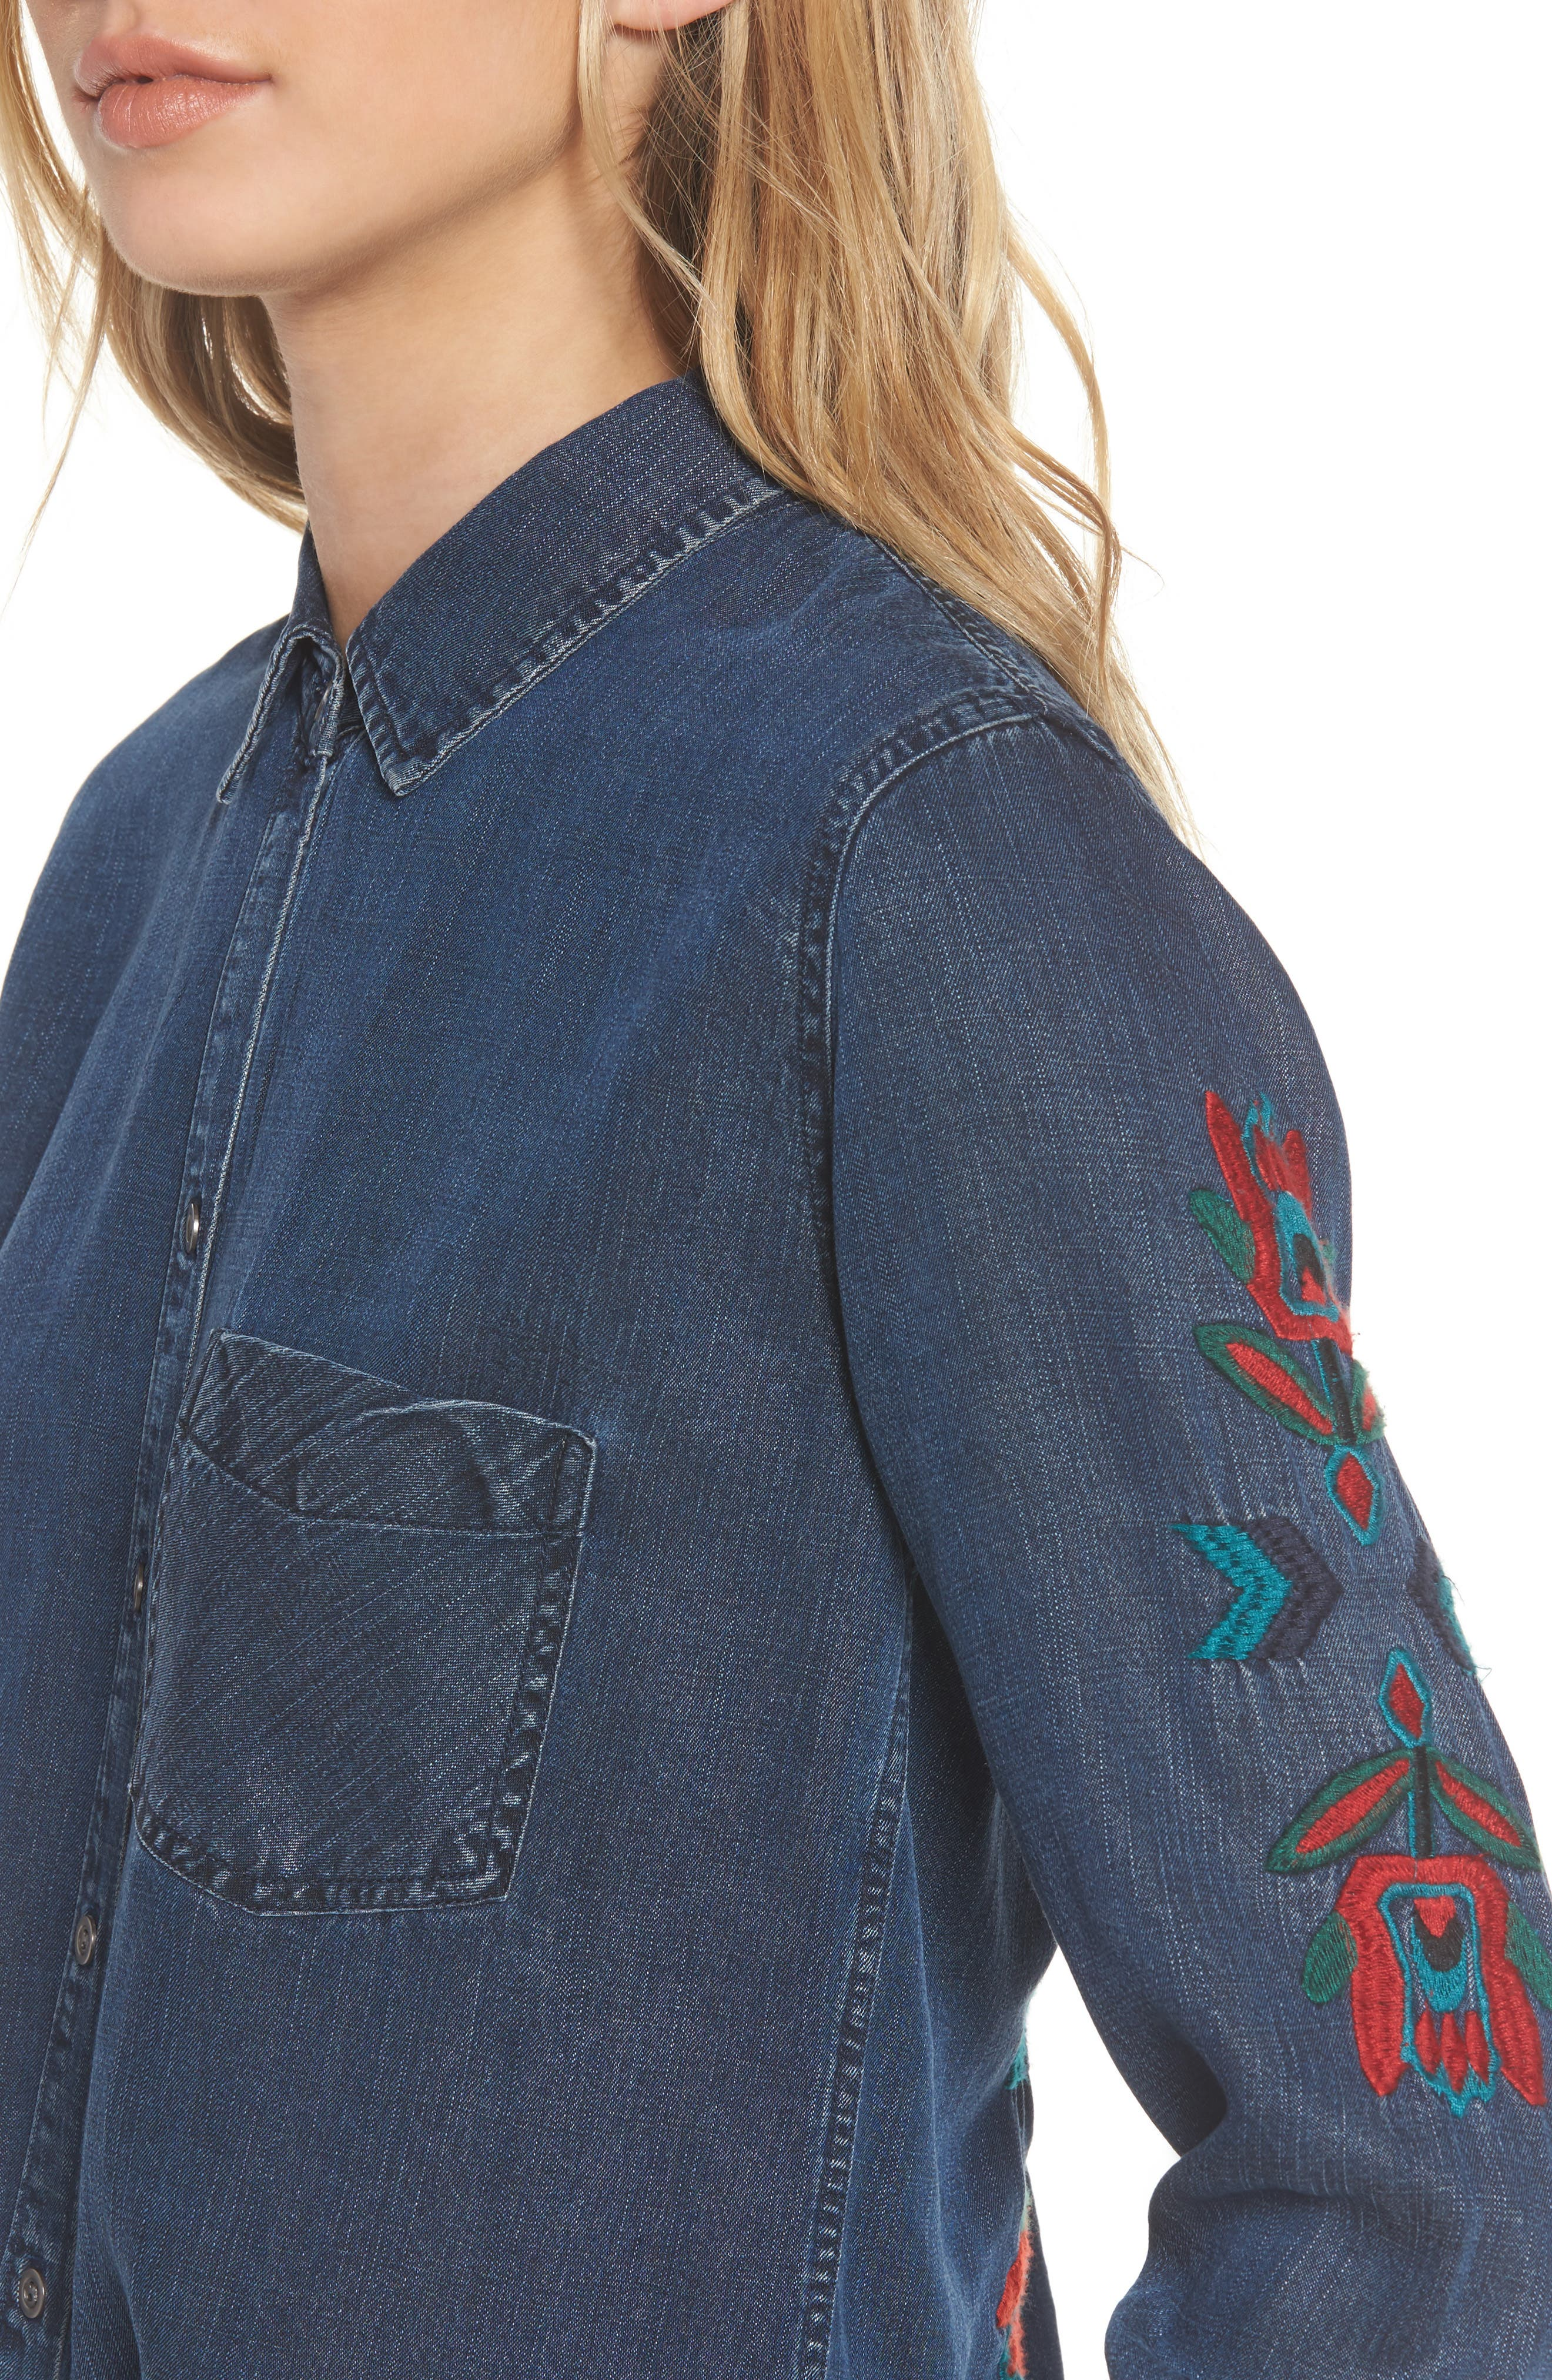 Ingrid Embroidered Shirt,                             Alternate thumbnail 4, color,                             432